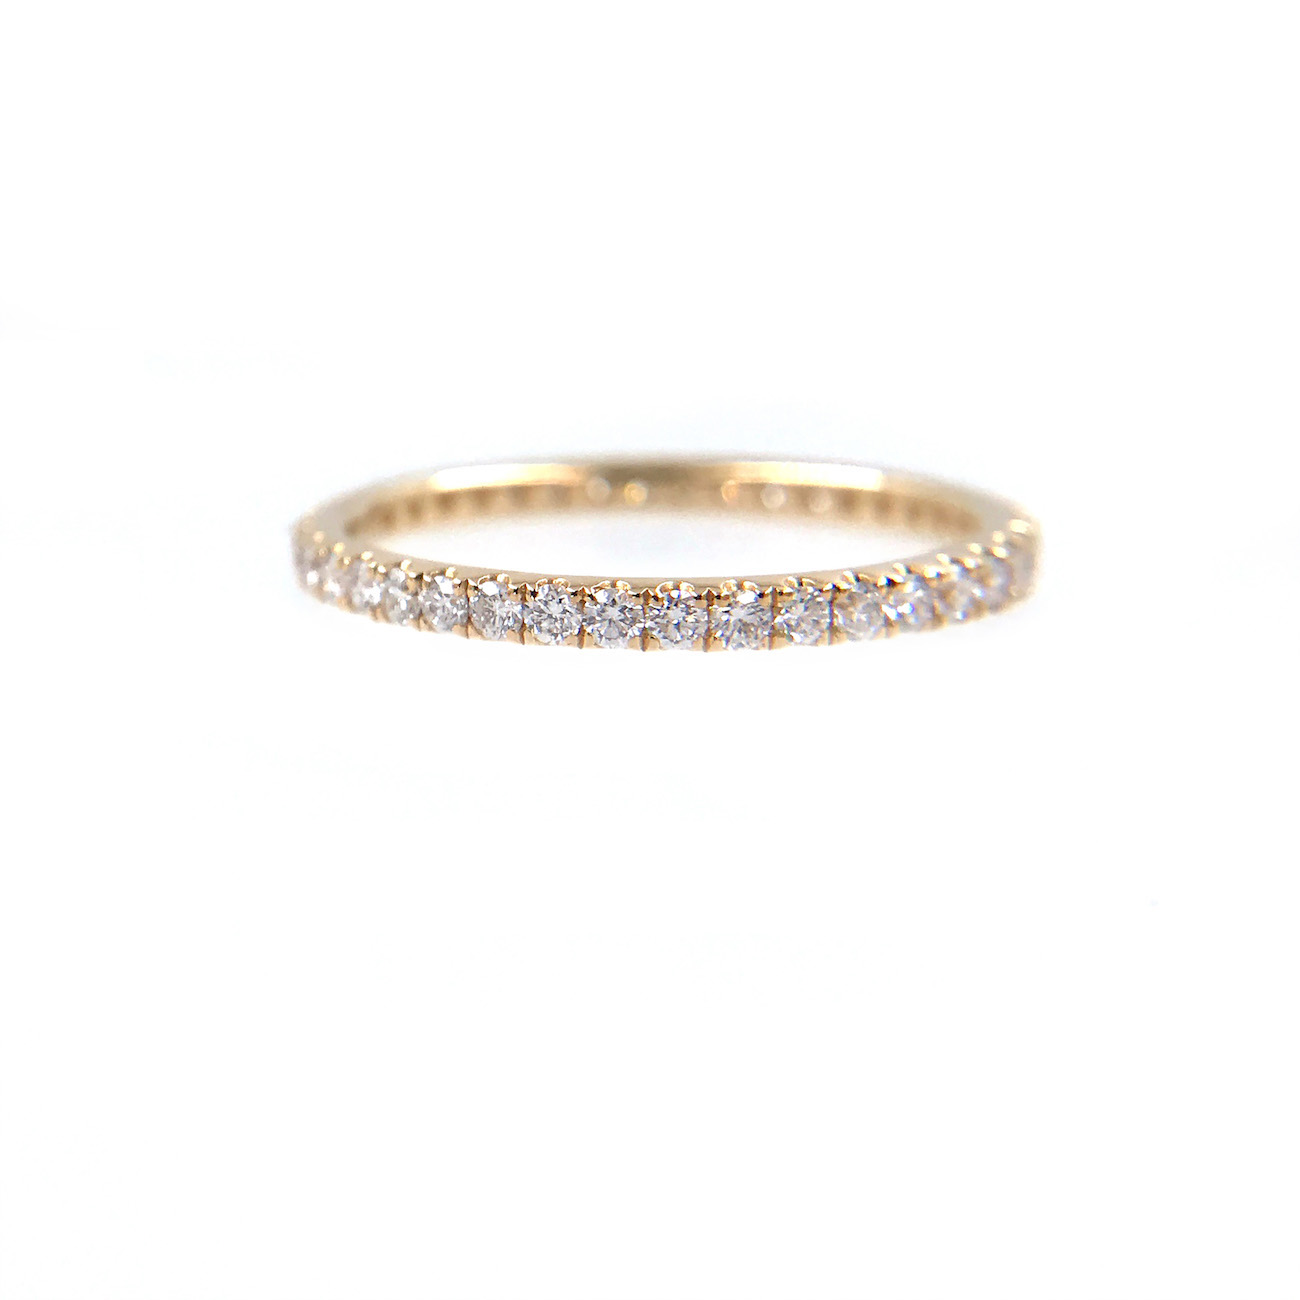 40-2mm-Pavé-Diamond-Eternity-Band-Ring-Guard-Spacer-14k-18k-JEWELYRIE_7745